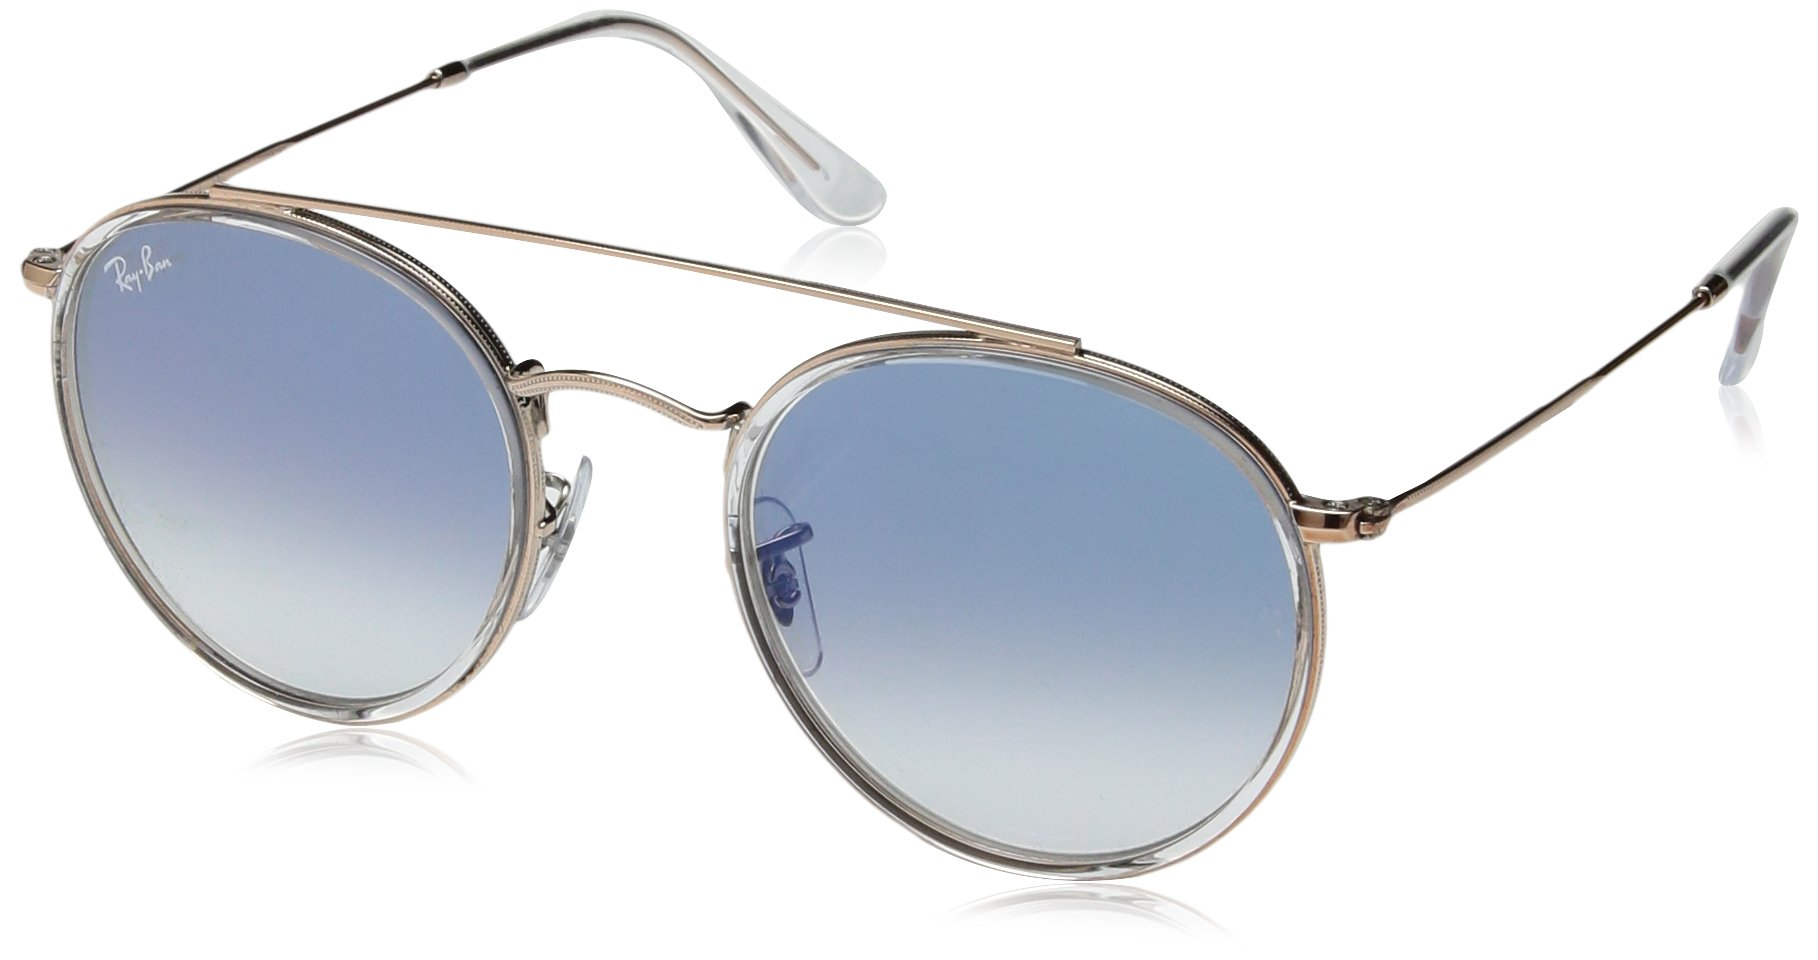 Ray-Ban Metal Unisex Aviator Sunglasses, Copper, 51 mm by Ray-Ban